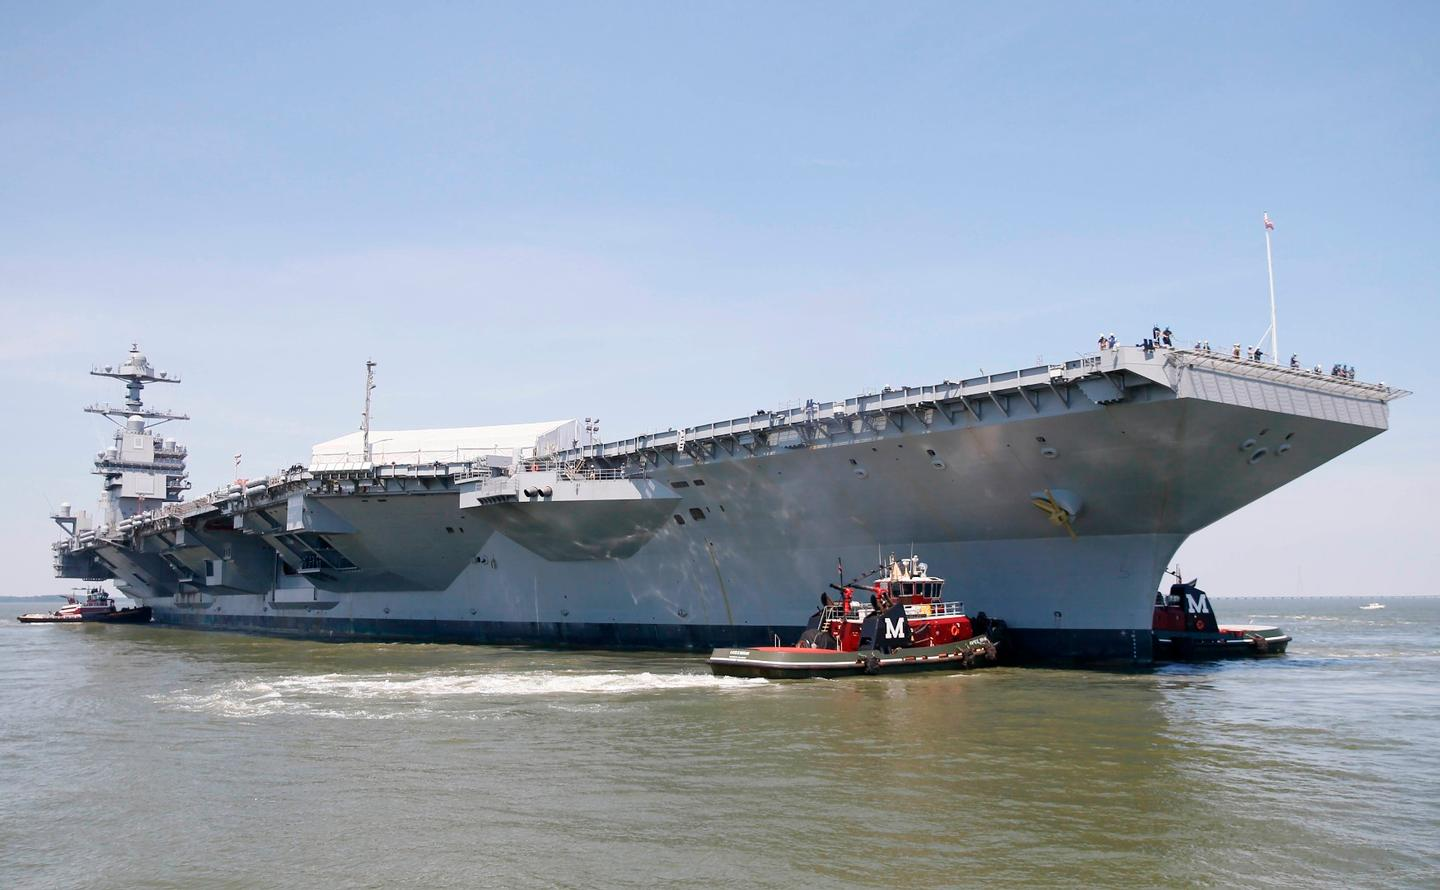 The USS Gerald R Ford is scheduled to be commissioned later this year